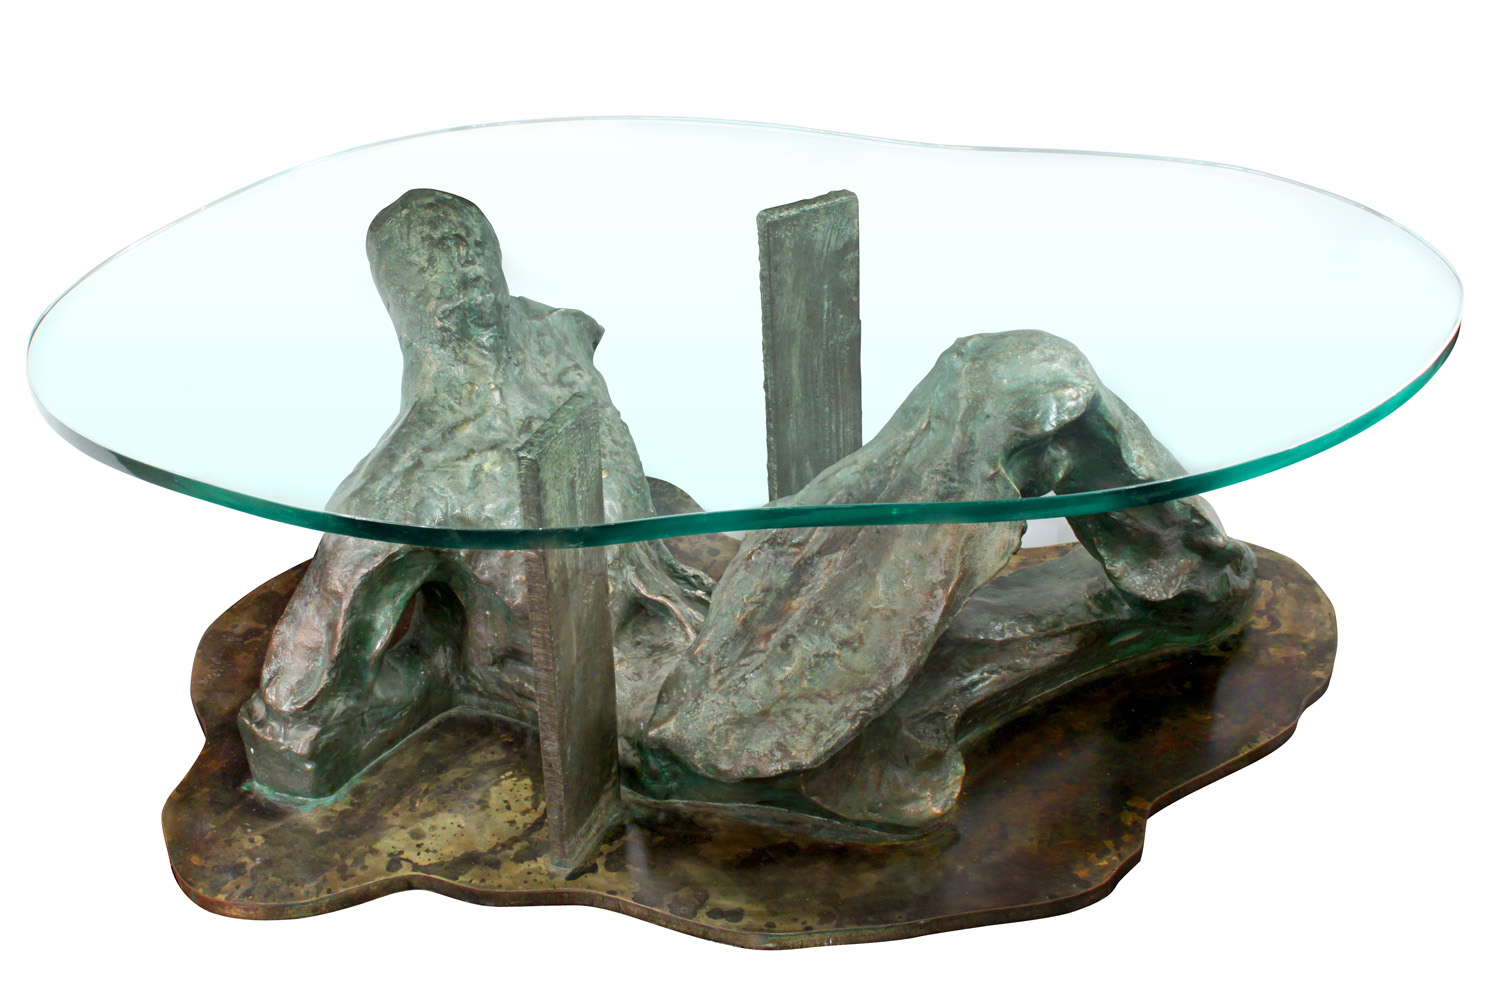 Laverne 450 Solitued male reclining bronze coffeetable361 hires.jpg